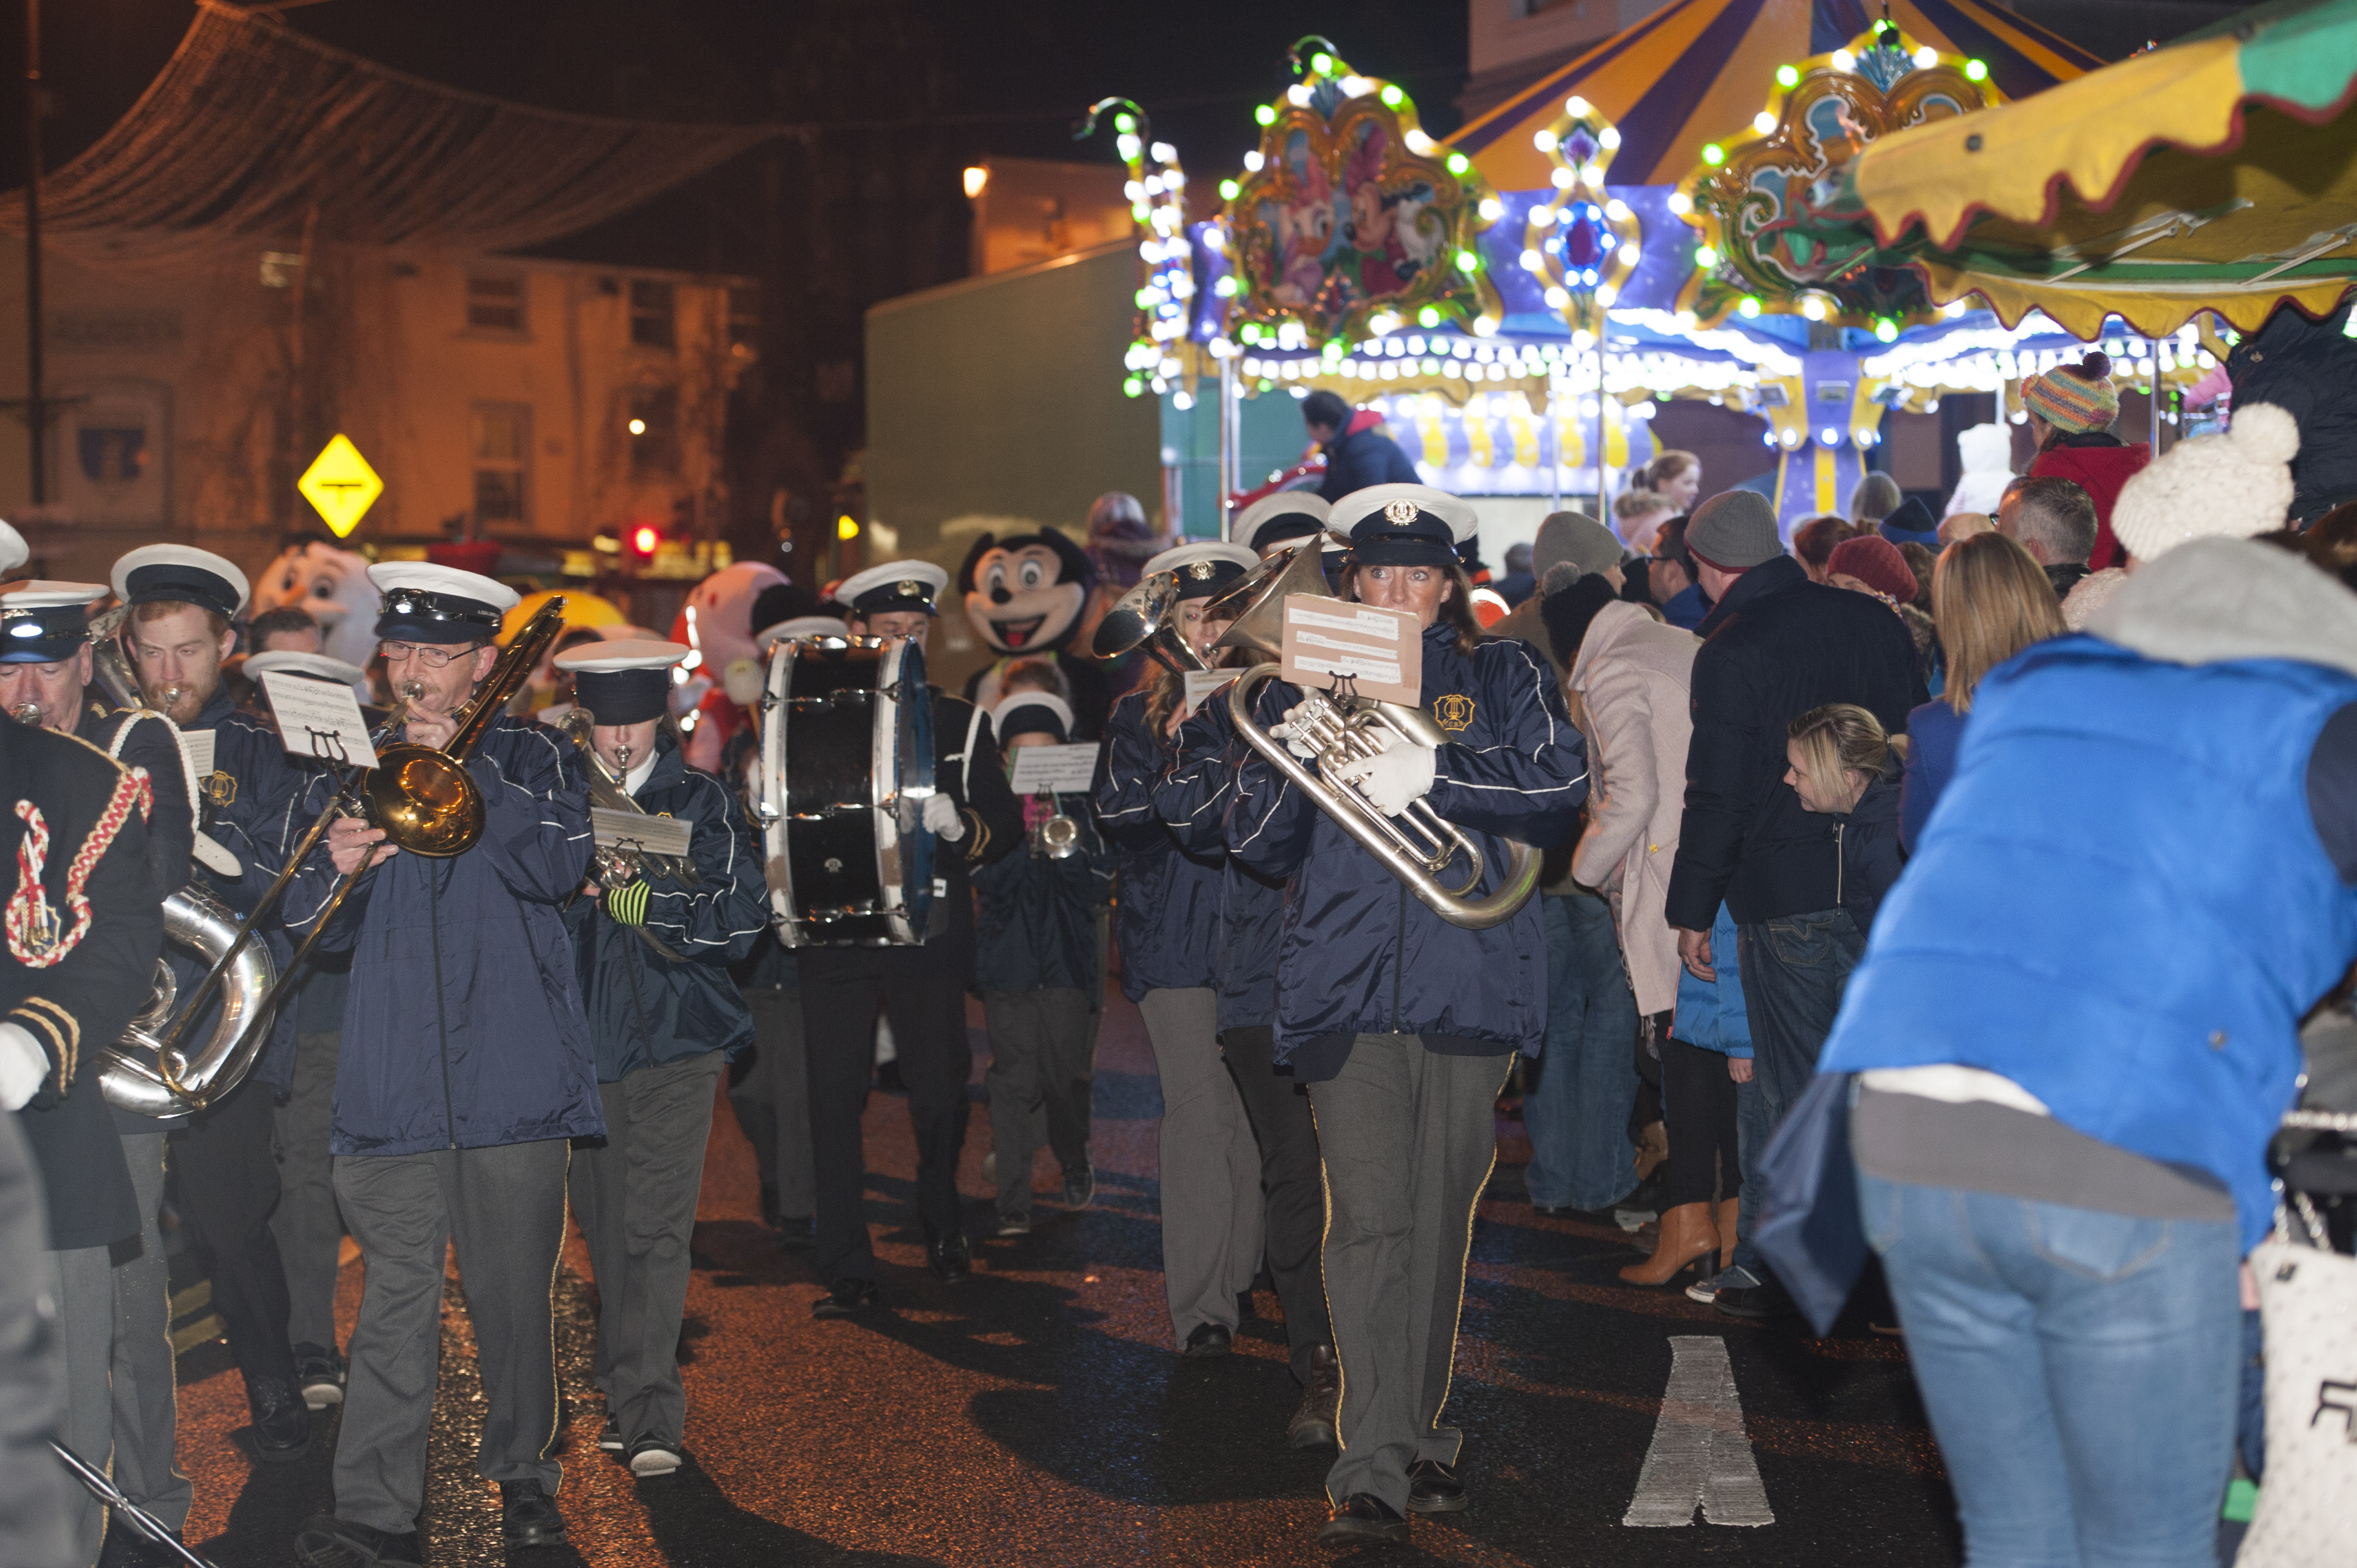 Members of Monaghan Community Brass Band leading Santa in Monaghan during the Monaghan Town Christmas Lights Switch-On. ©Rory Geary/The Northern Standard